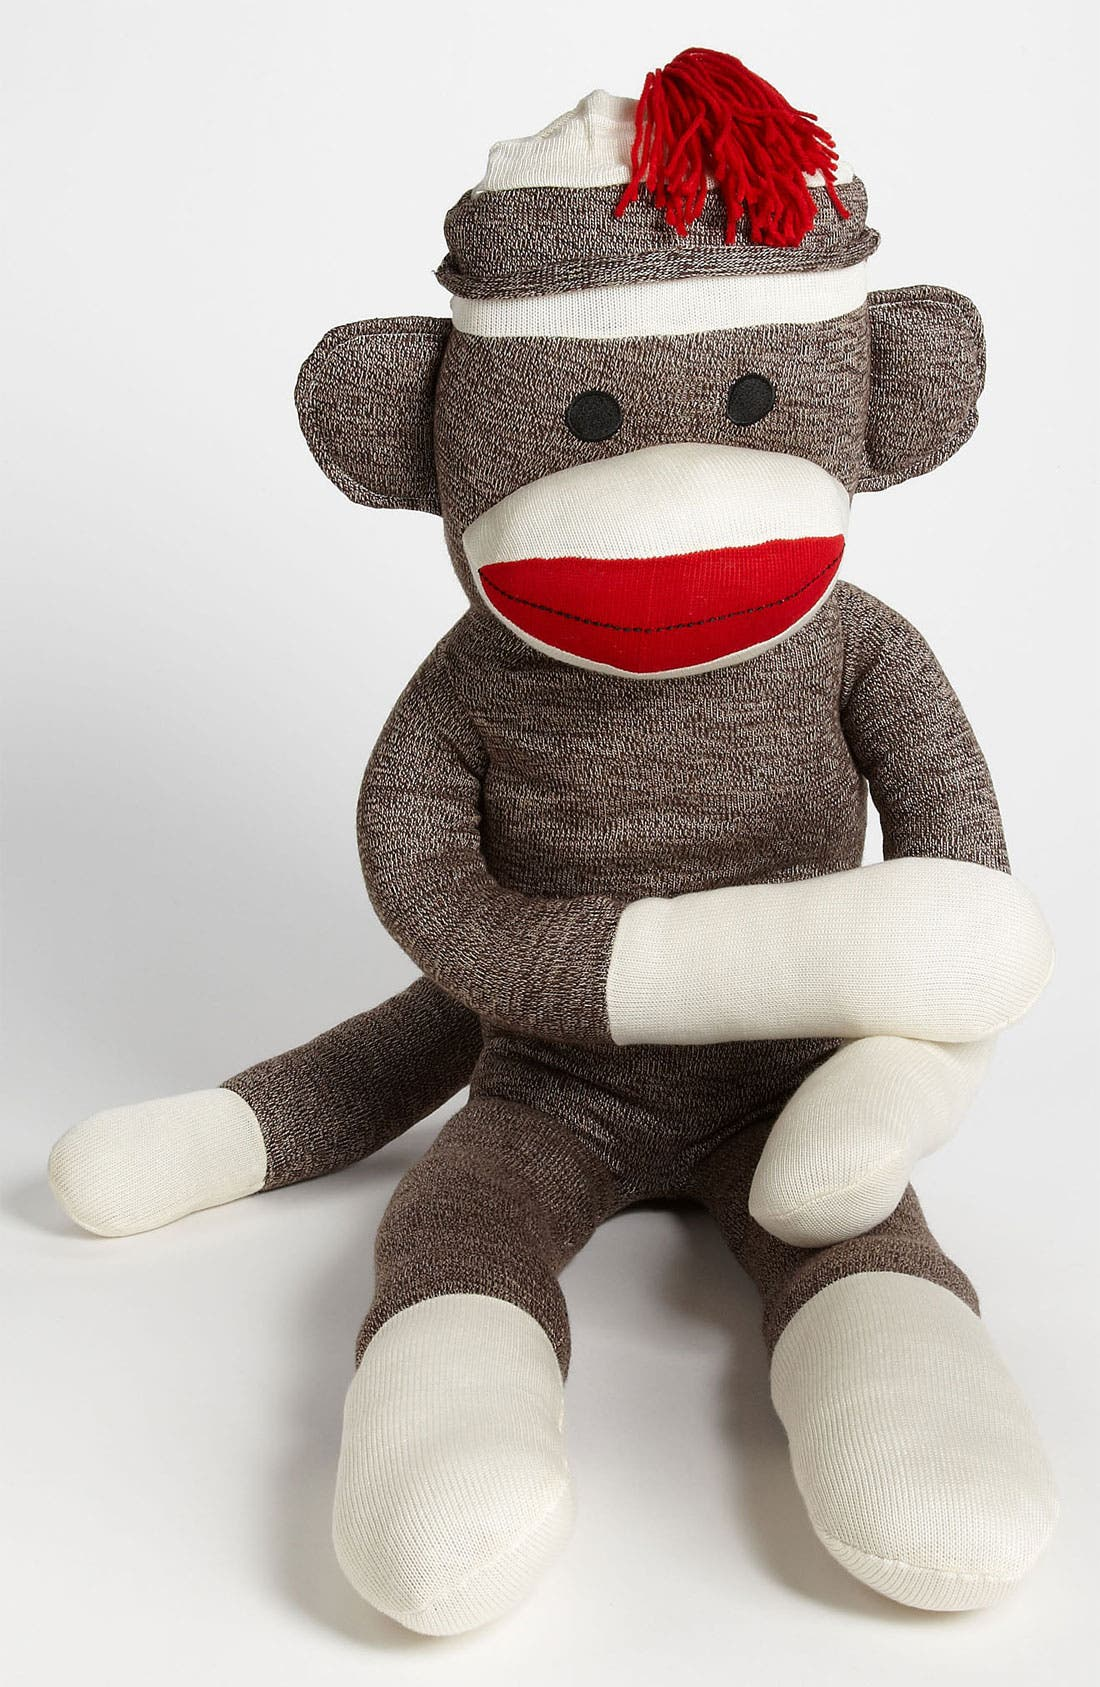 Alternate Image 1 Selected - Schylling Jumbo Sock Monkey Stuffed Animal